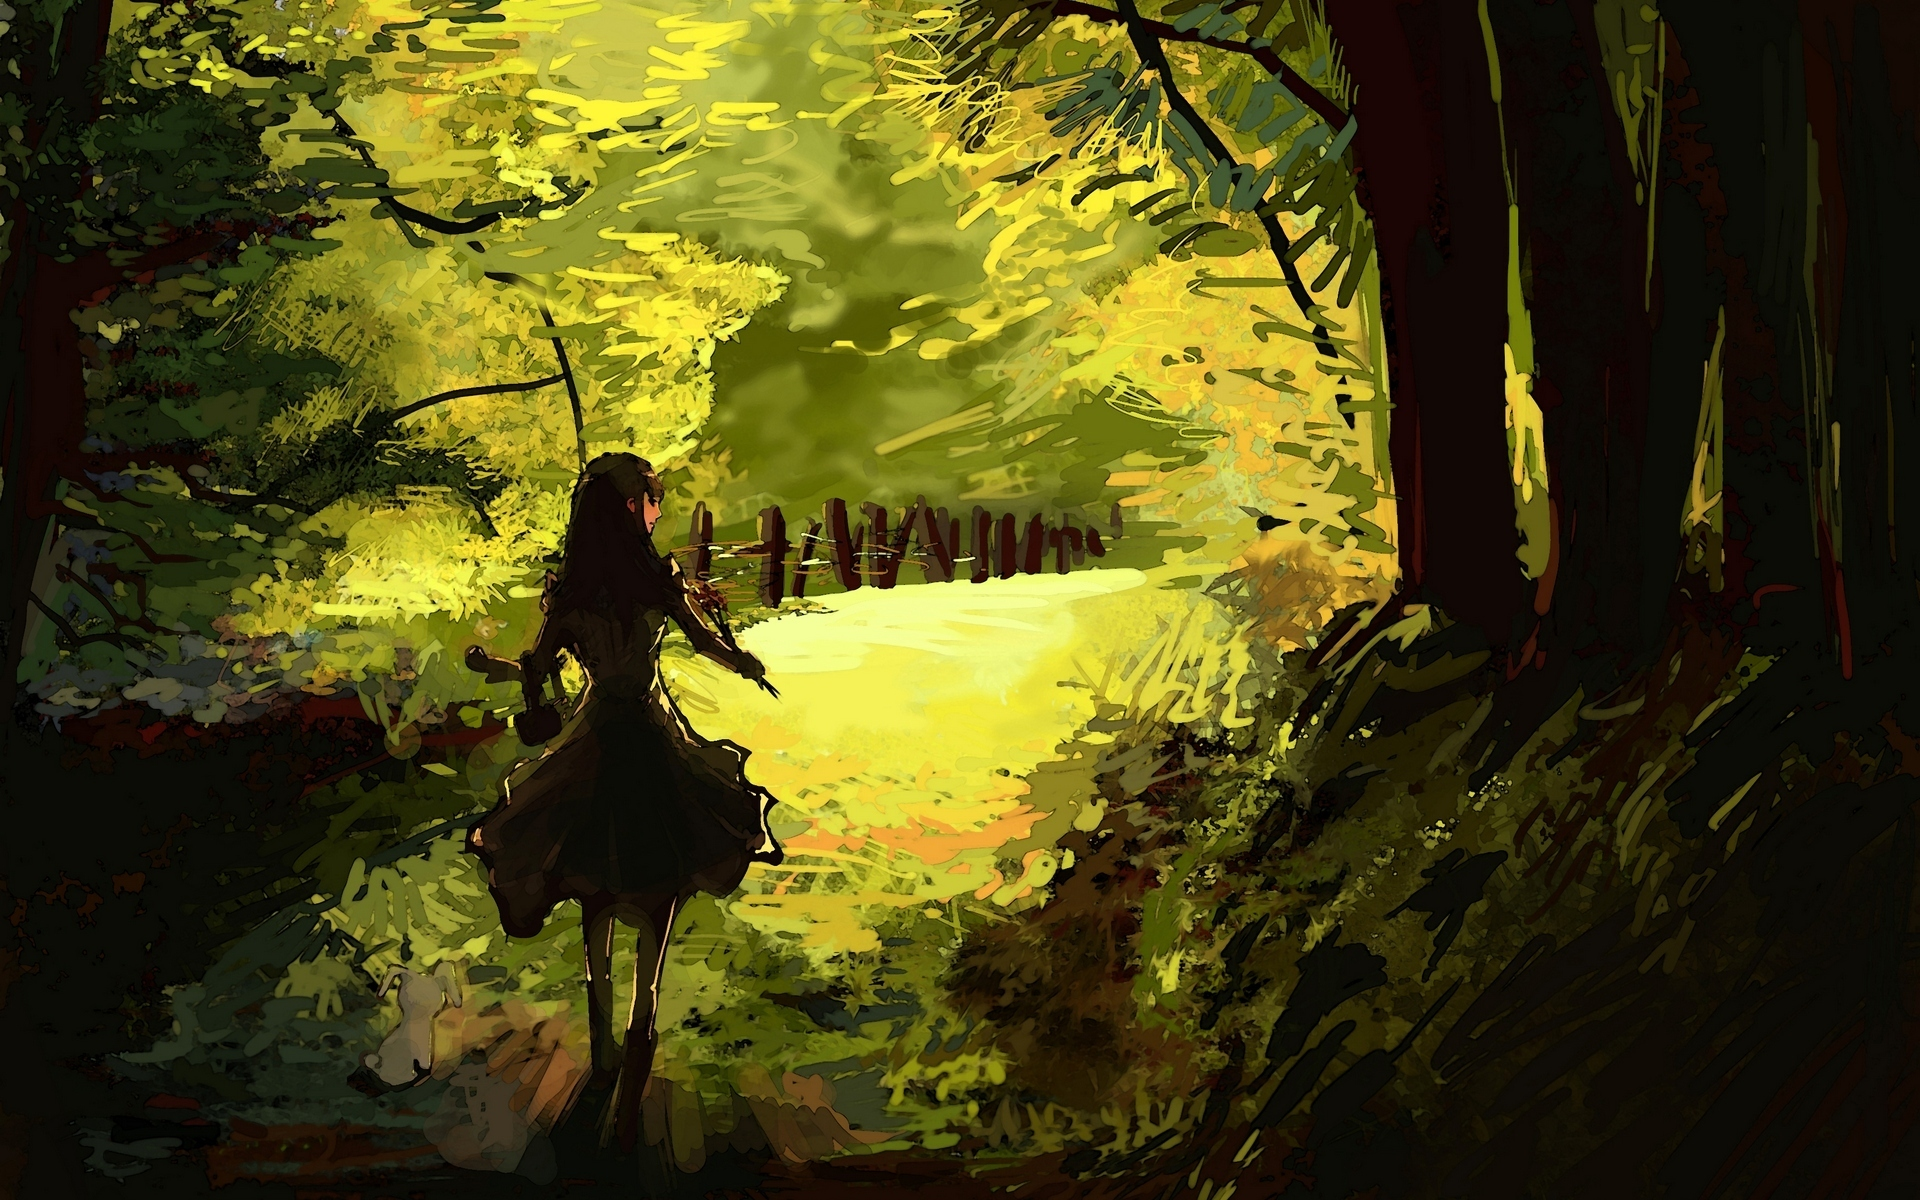 Anime girl in the woods